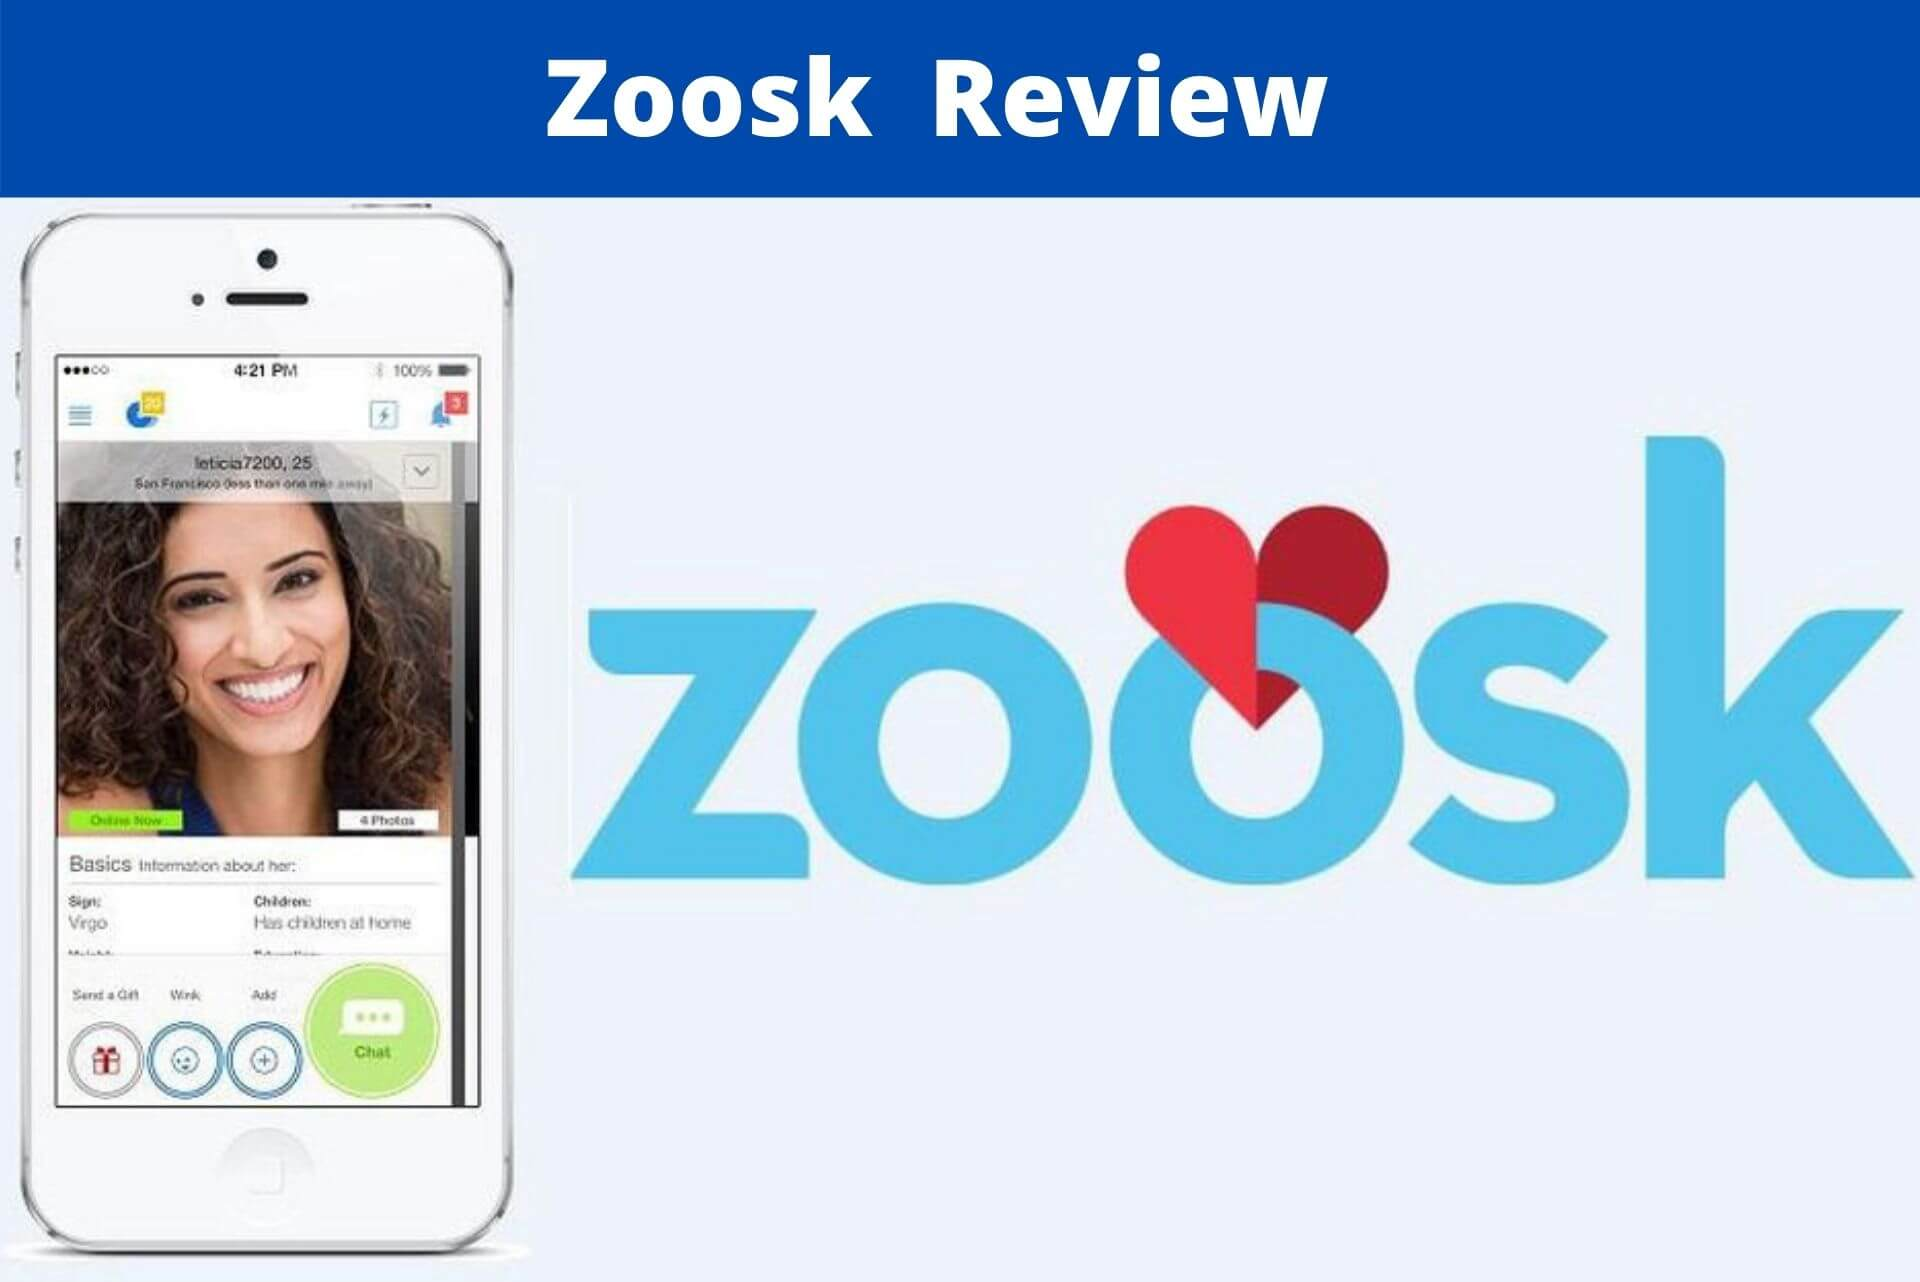 Zoosk Reviews – Here's What They're Good (And Not So Good) At